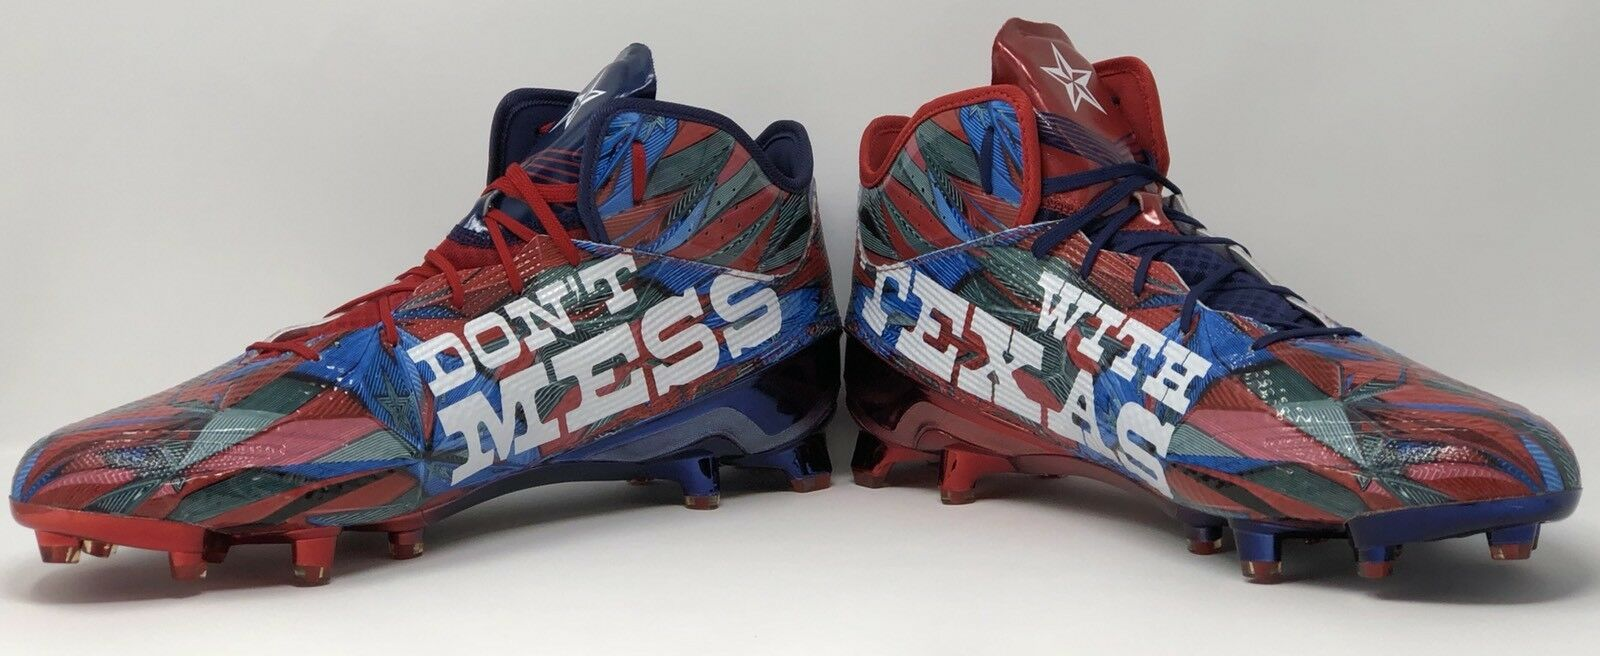 Adidas 5.0  Don't Mess With Texas  Football Cleat Red blueee Size 14 (B42741) NEW